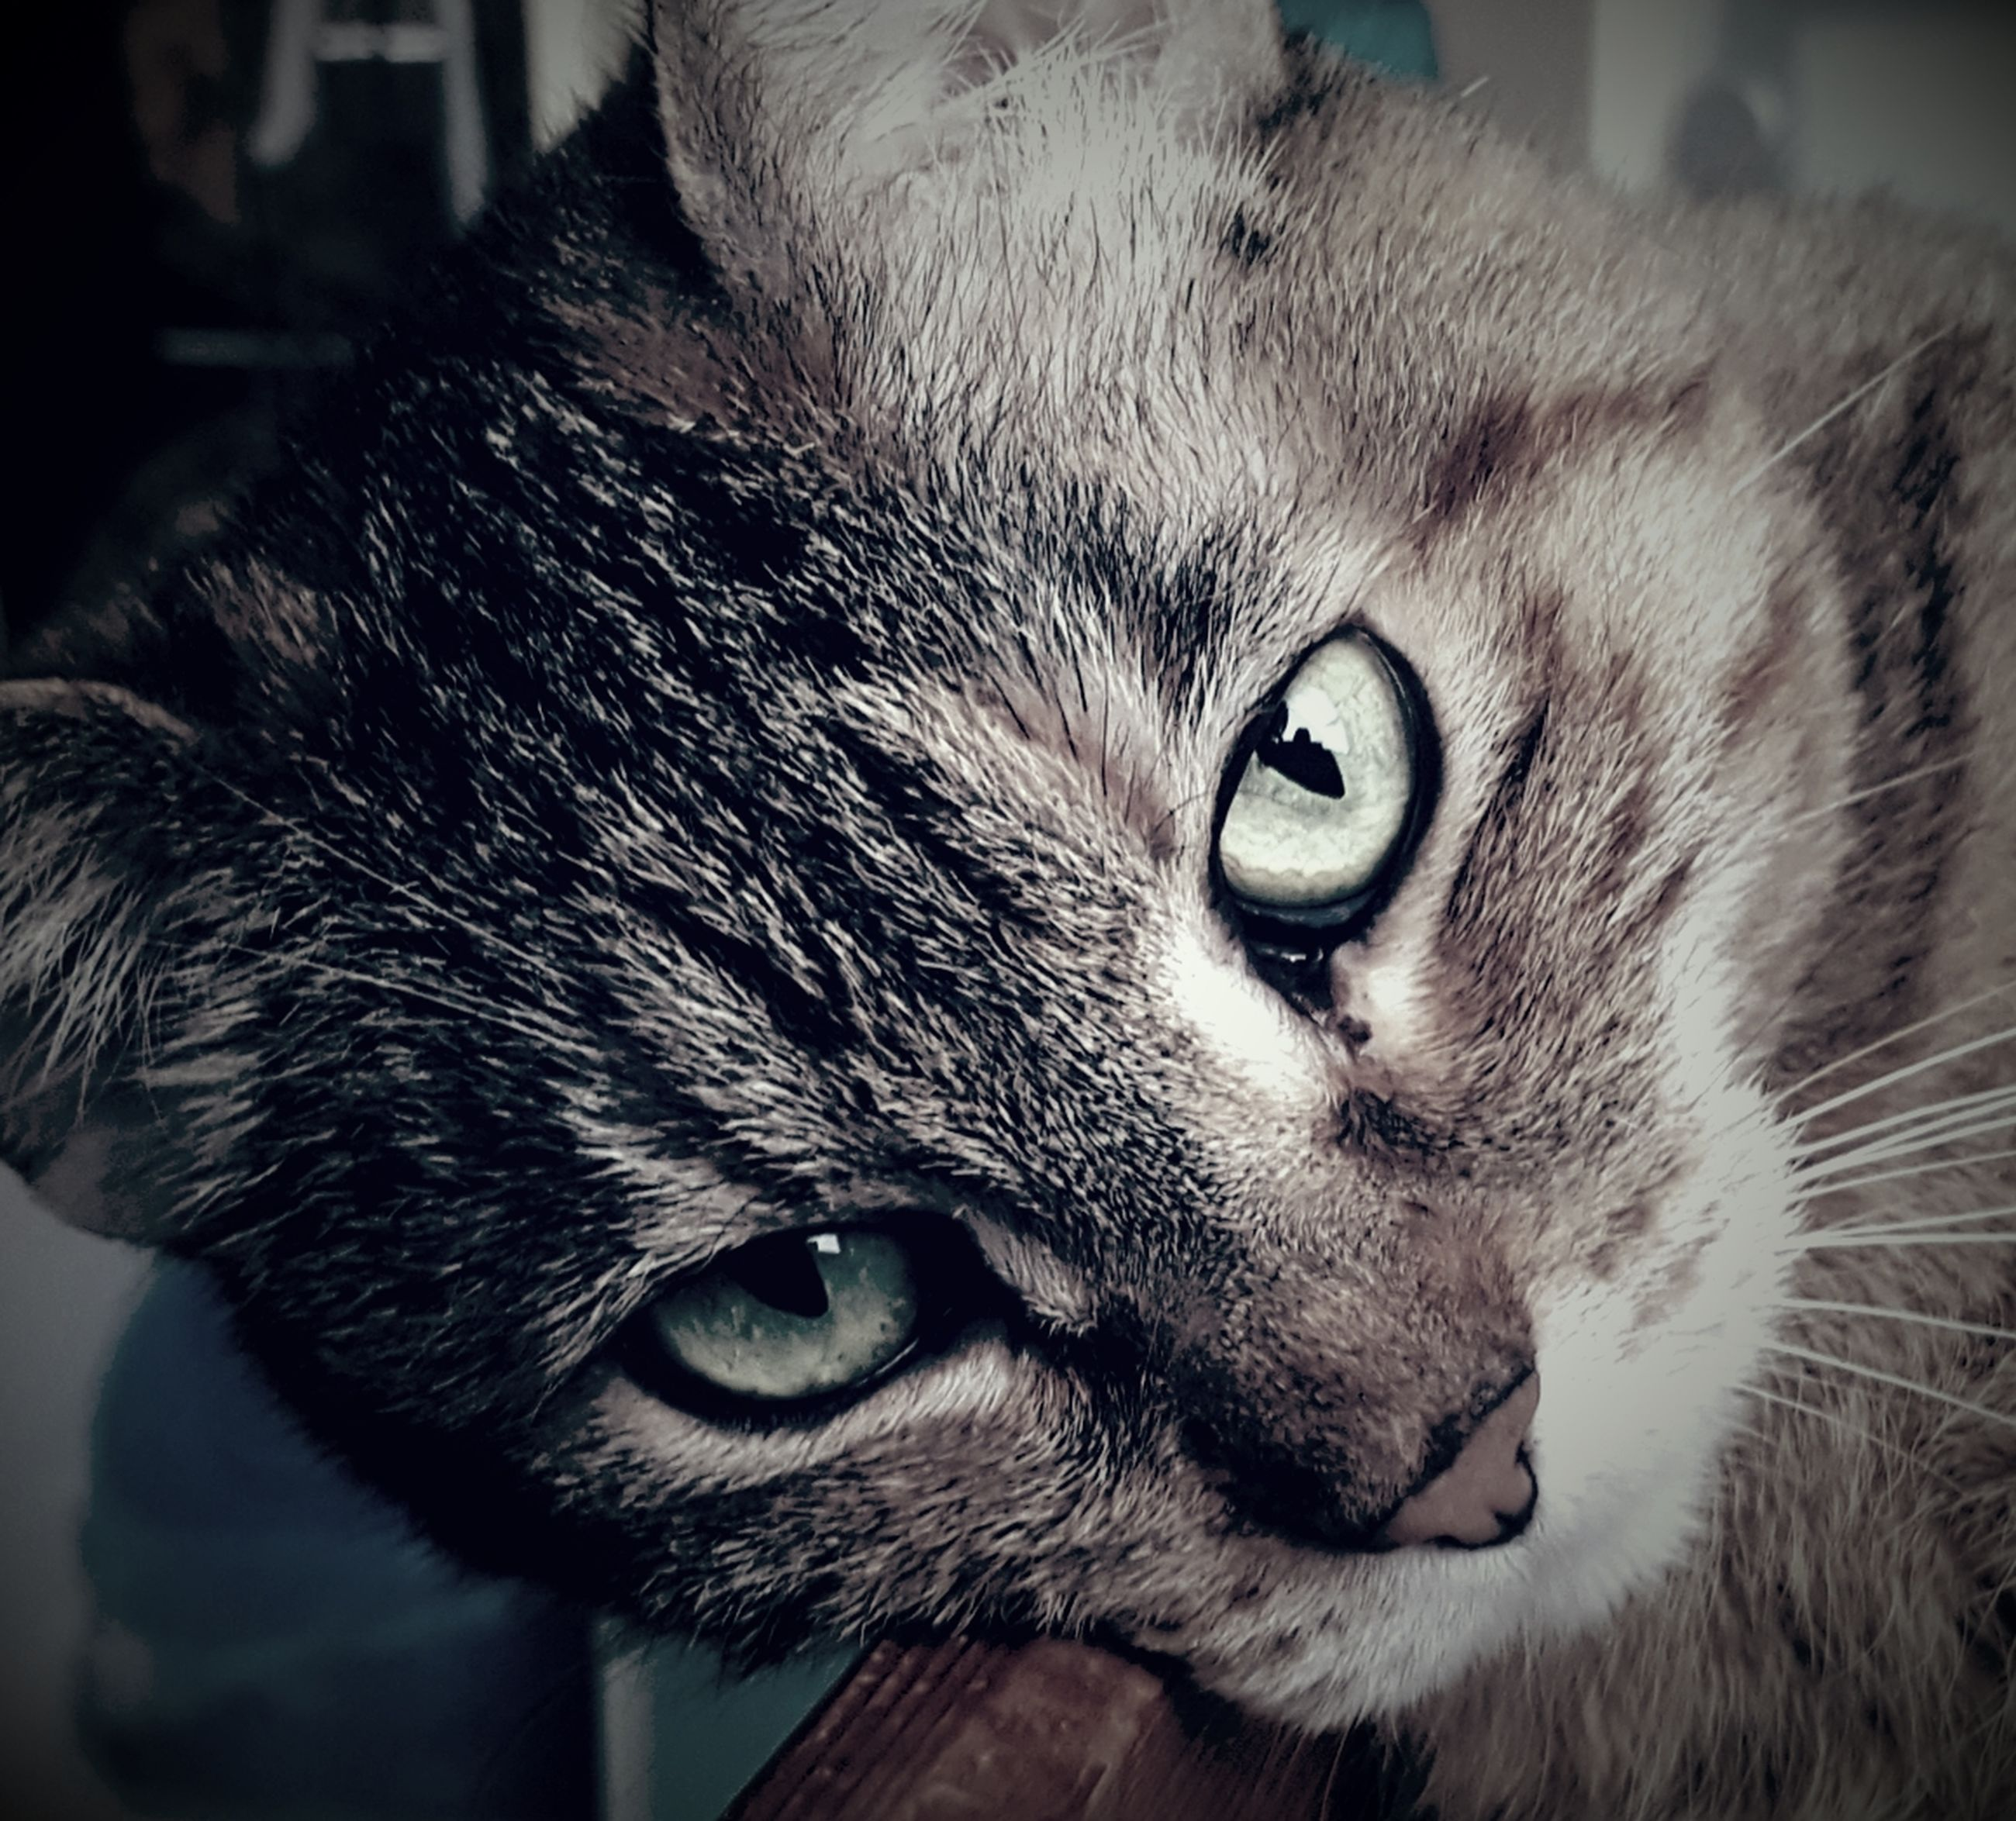 domestic cat, domestic animals, one animal, pets, close-up, animal themes, mammal, indoors, portrait, feline, whisker, looking at camera, no people, day